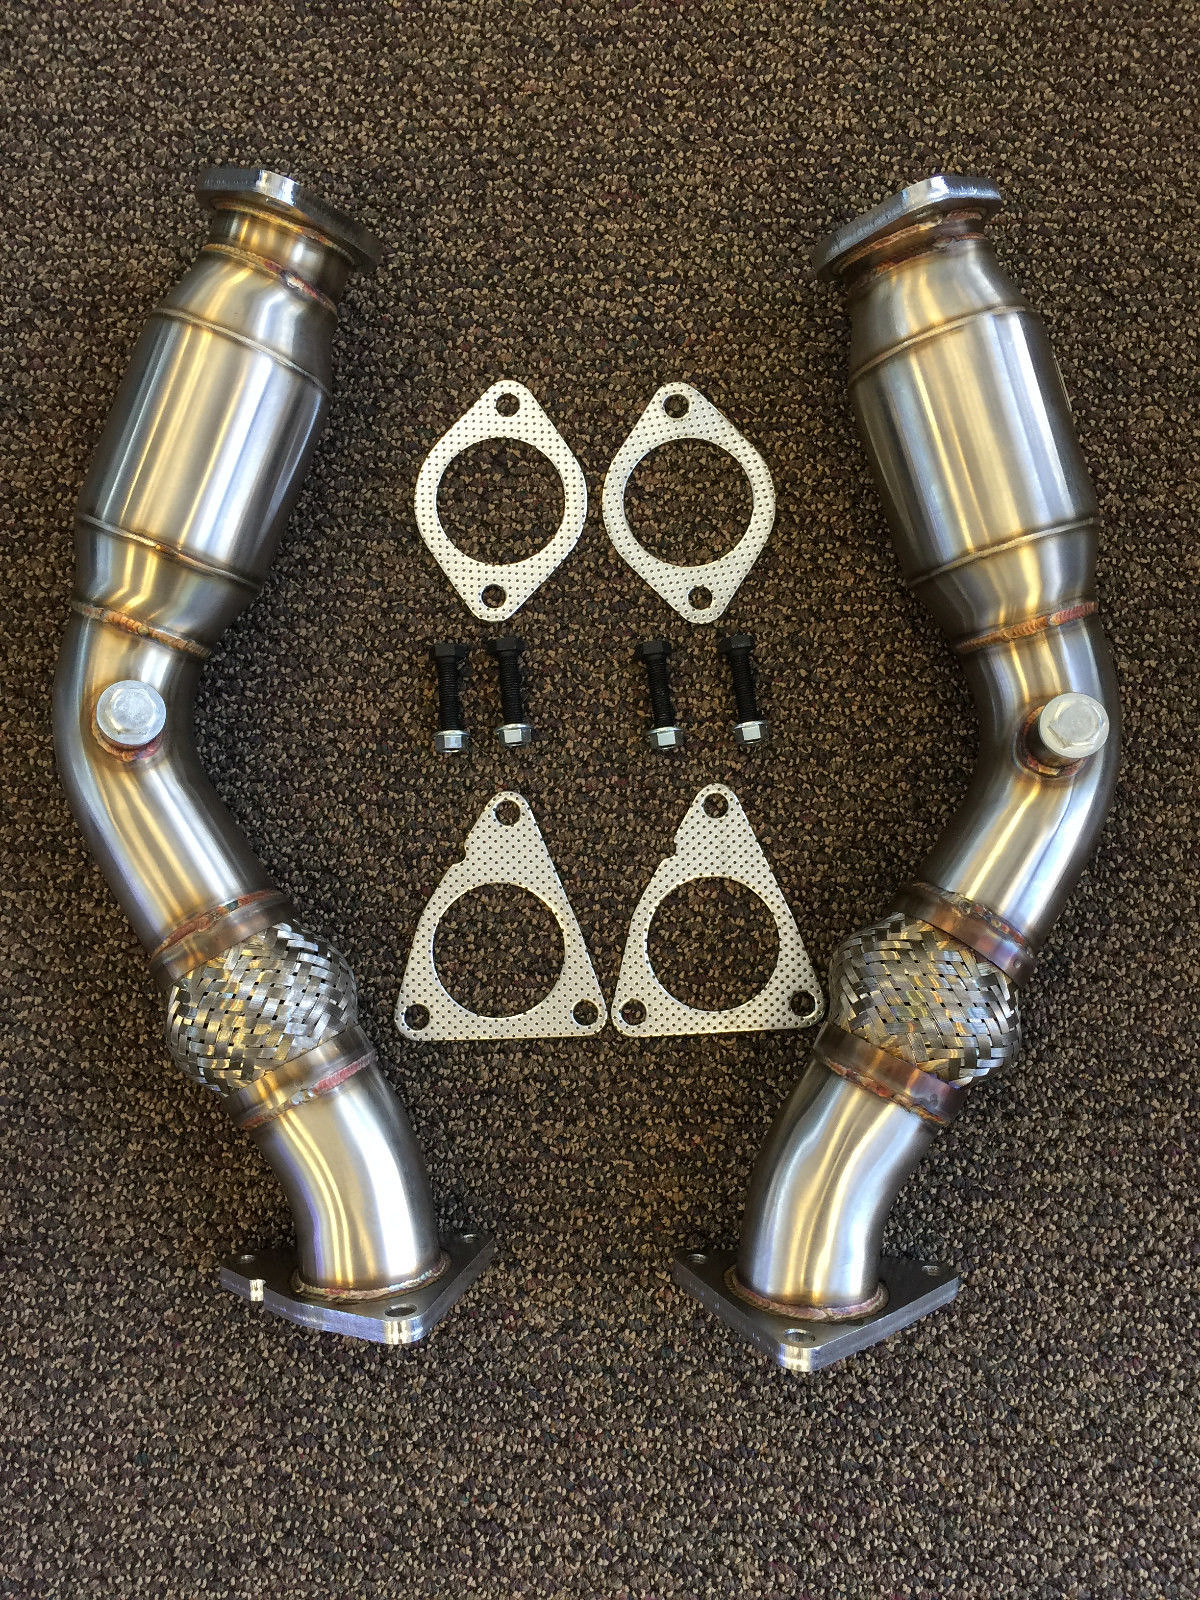 Motordyne Exhaust with Resonated Test Pipes - Infiniti Q50 Forum